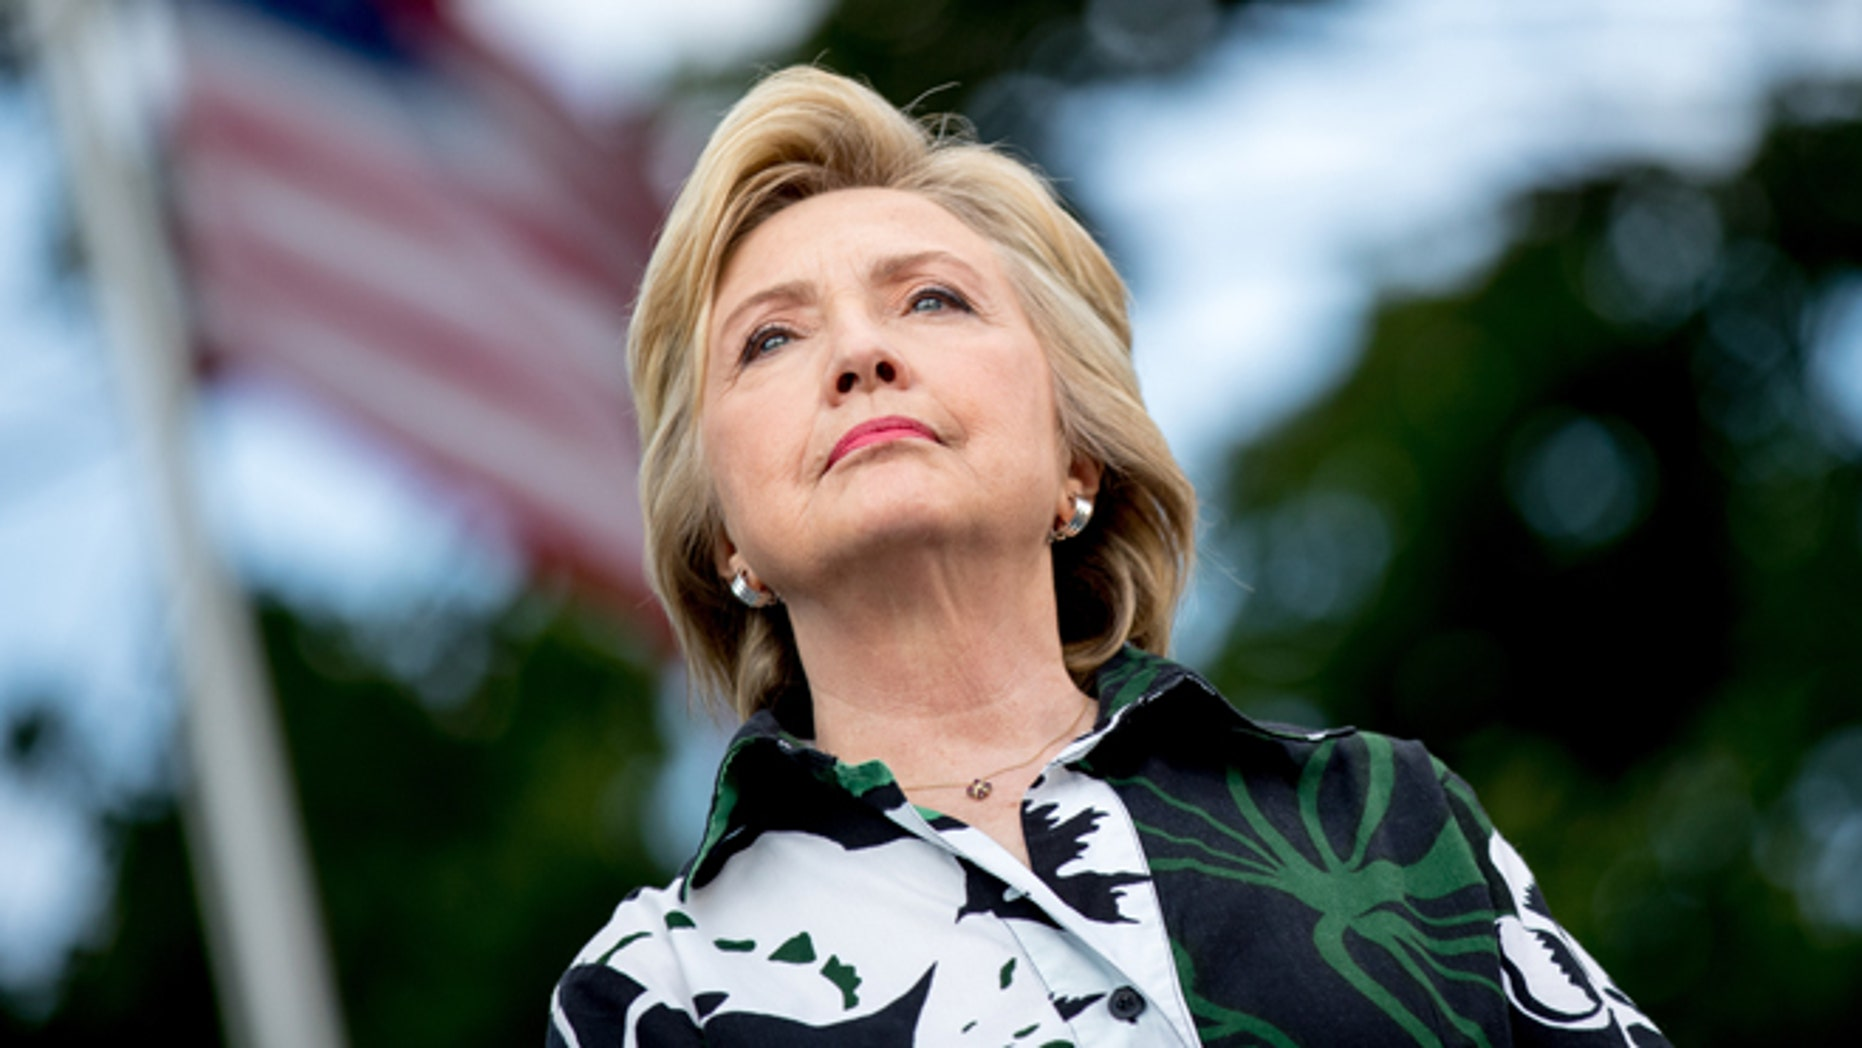 Democratic presidential candidate Hillary Clinton appears on stage at a rally a Fort Hayes Metropolitan Education Center in Columbus, Ohio, Sunday, July 31, 2016. Clinton and Kaine are on a three-day bus tour through the rust belt. (AP Photo/Andrew Harnik)